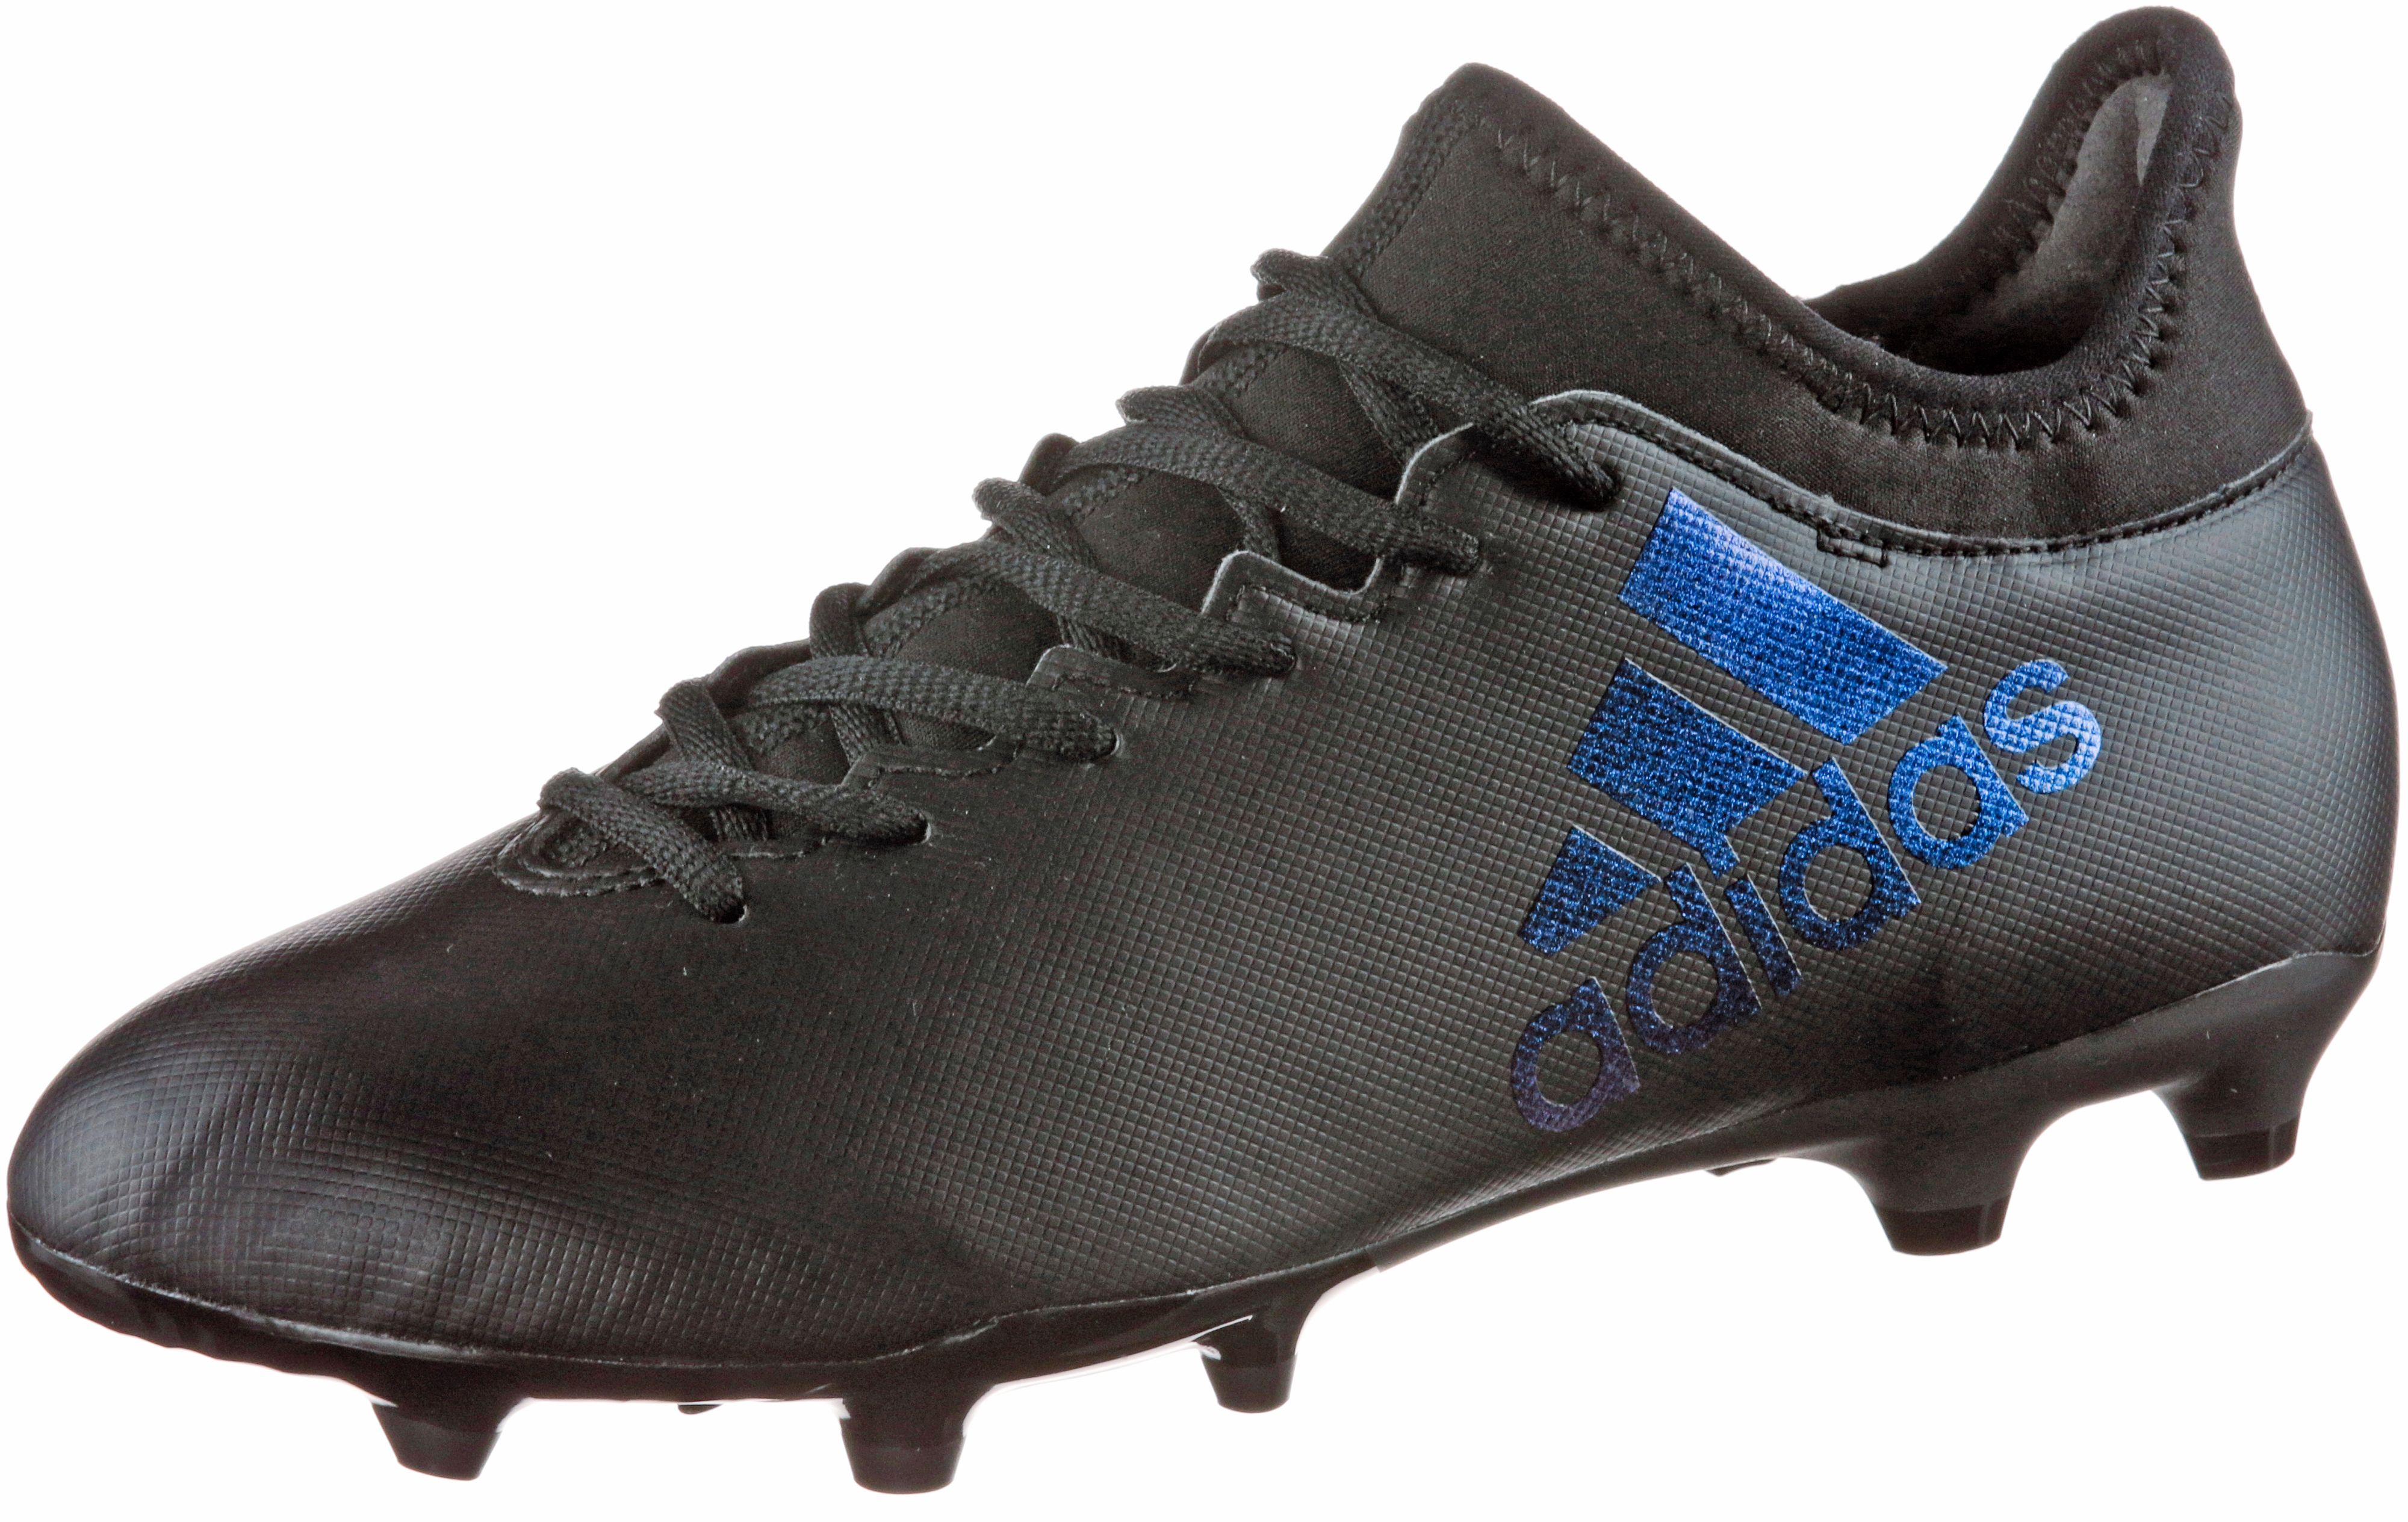 COPA TANGO 18.1 IN - Fußballschuh Halle - core black/footwear white/real coral uC3Nl